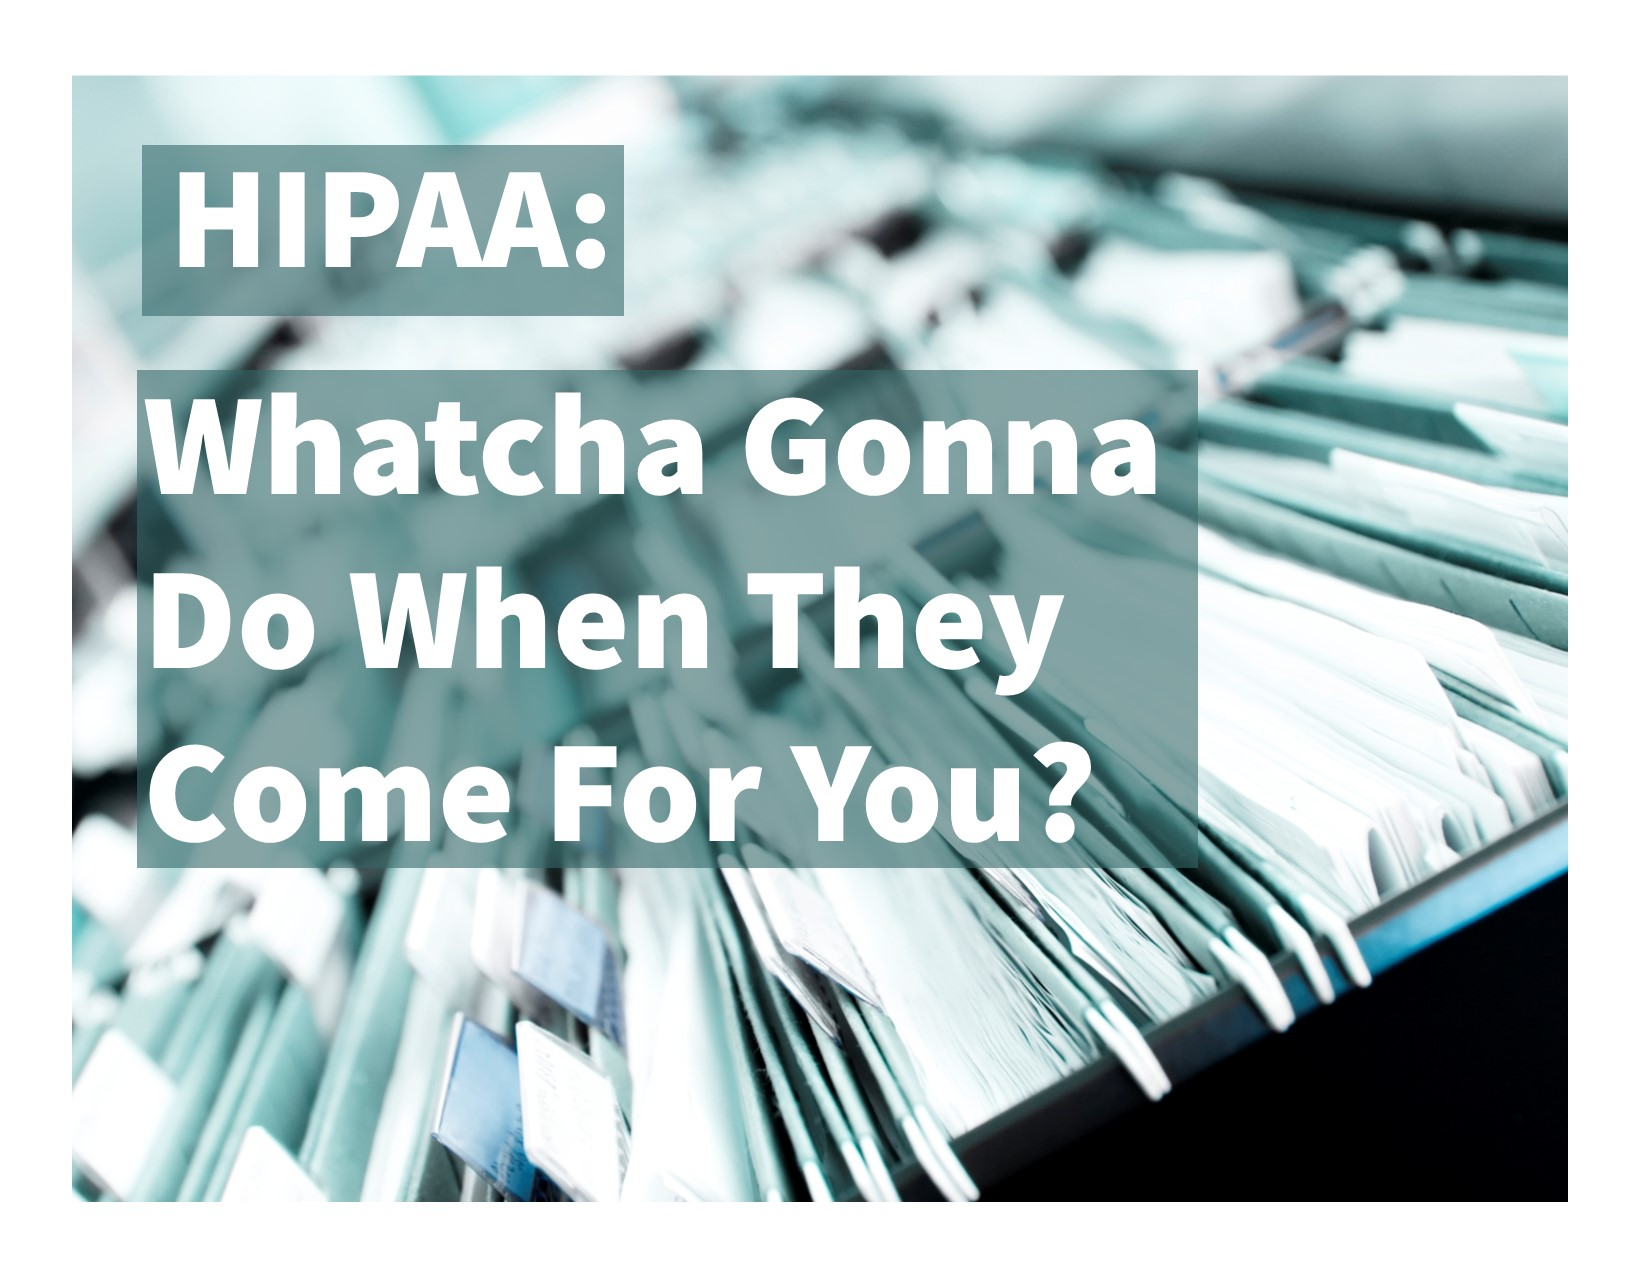 HIPAA: Whatcha Gonna Do When They Come For You?